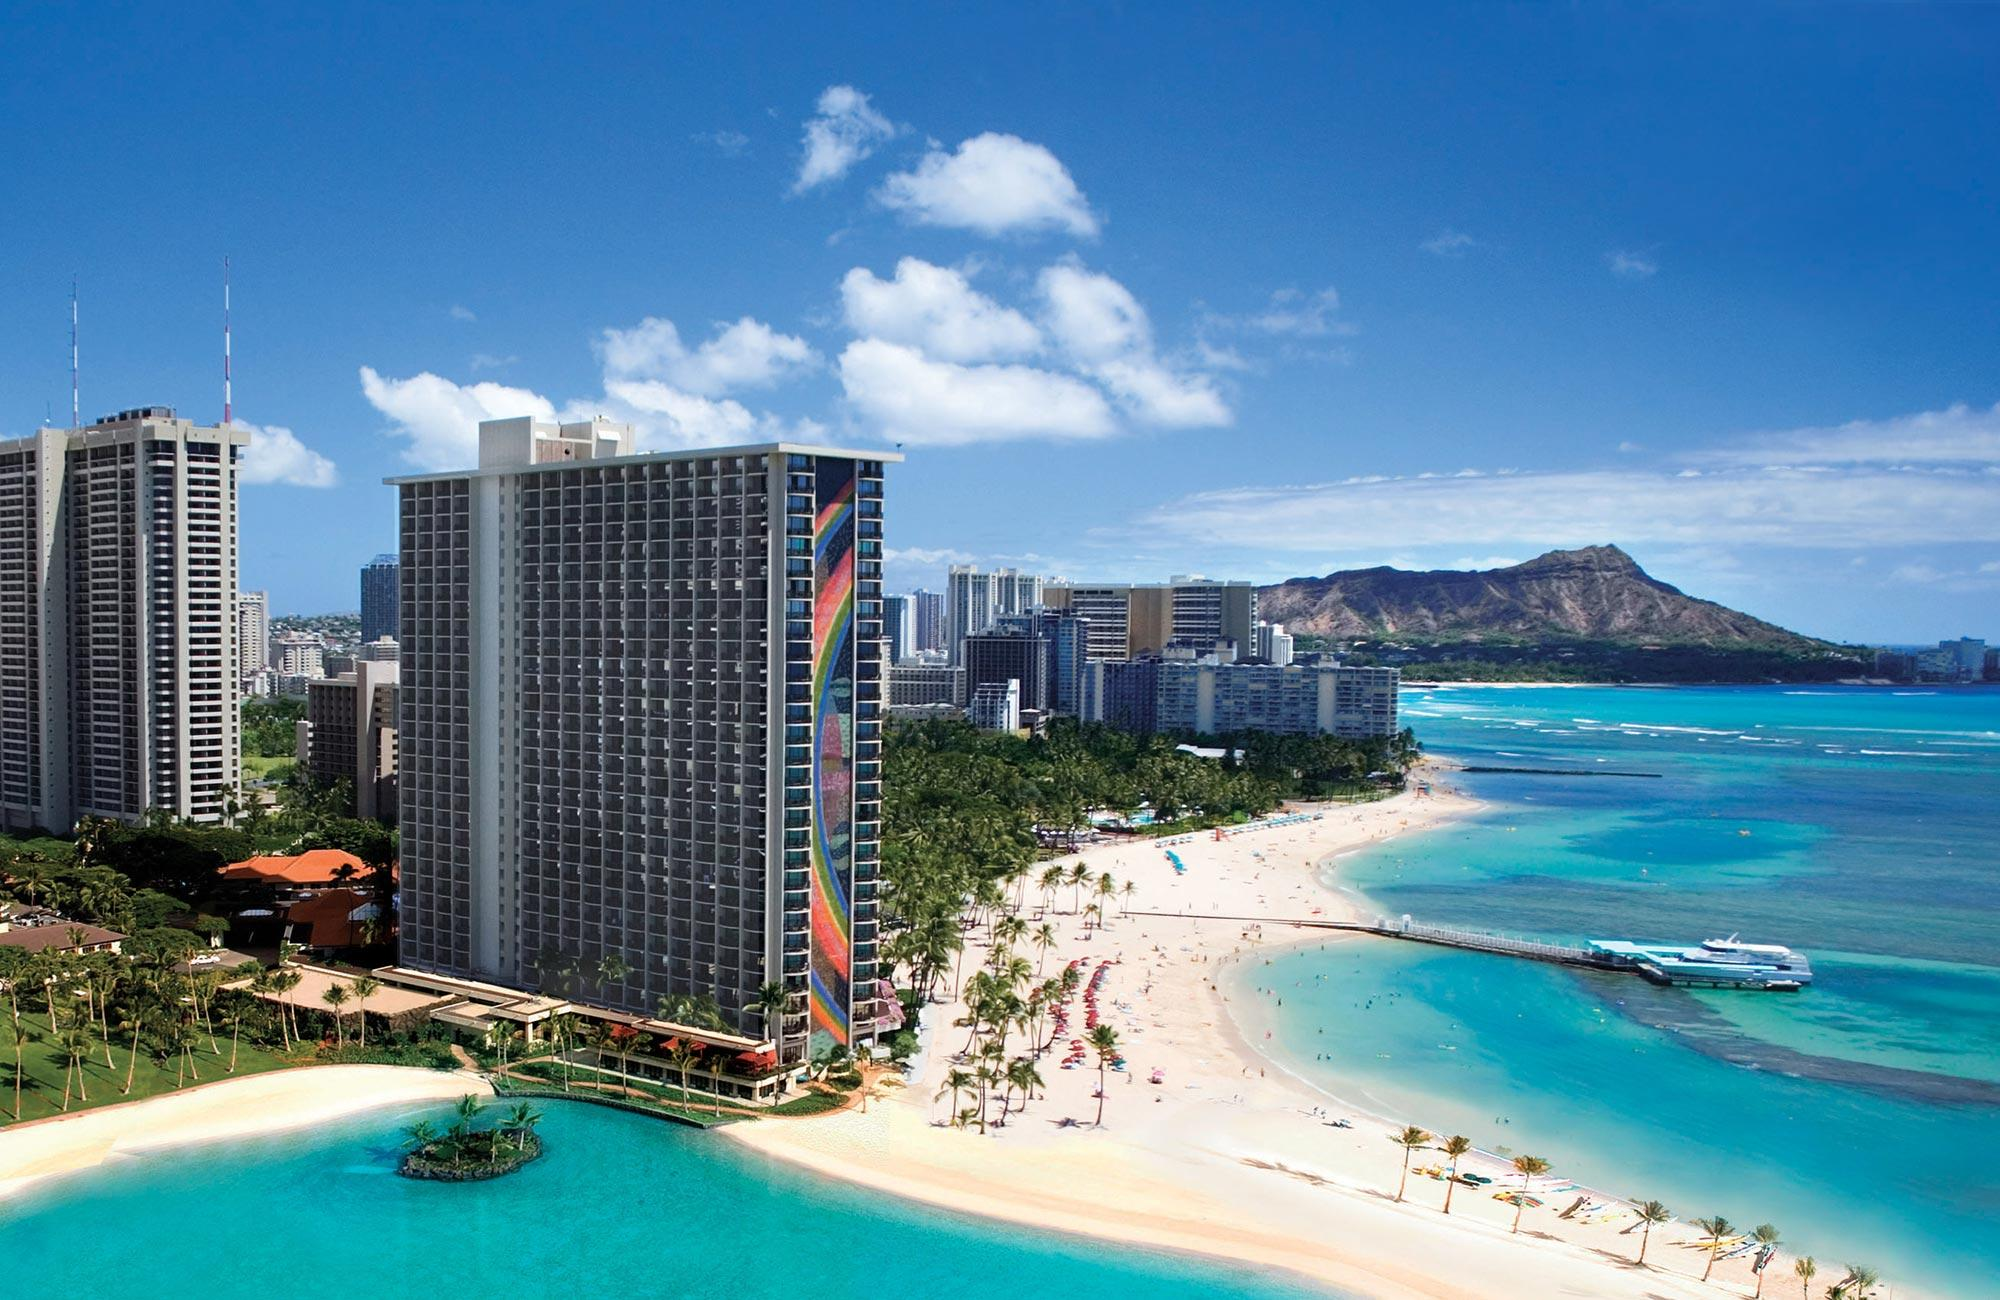 Honolulu Wallpapers High Quality | Download Free